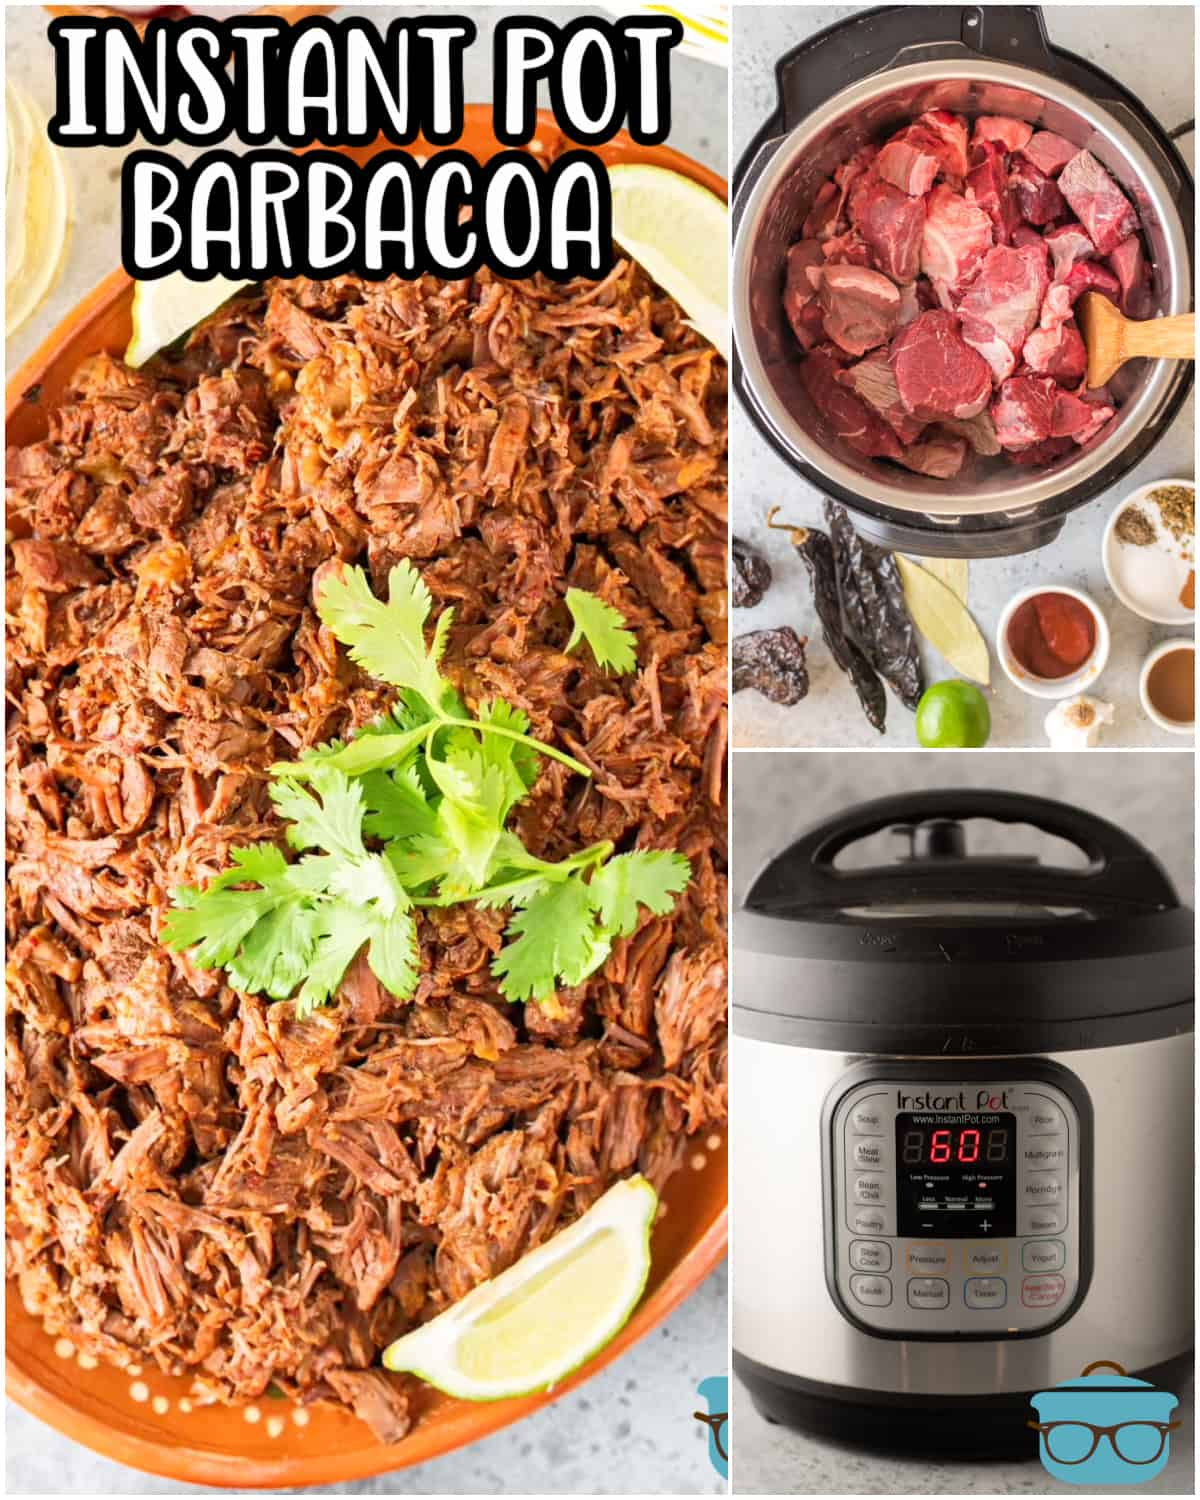 This Instant Pot Barbacoa is tender, juicy beef cooked in a delicious medley of chilis and spices. Perfect in so many different dishes such as tacos, bowls and burritos!